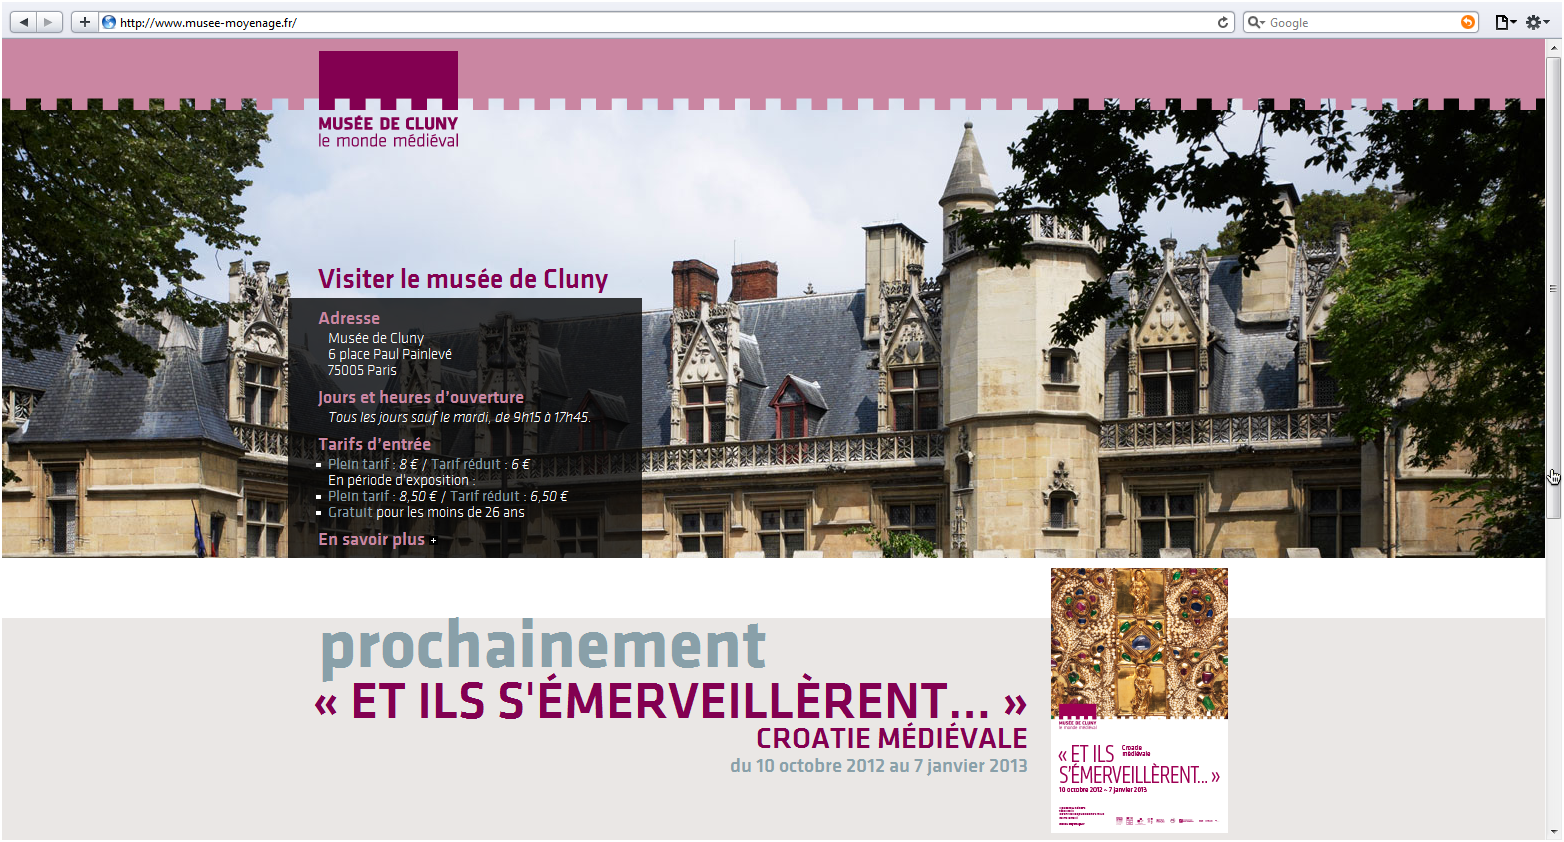 Musée de Cluny, website screenshot.